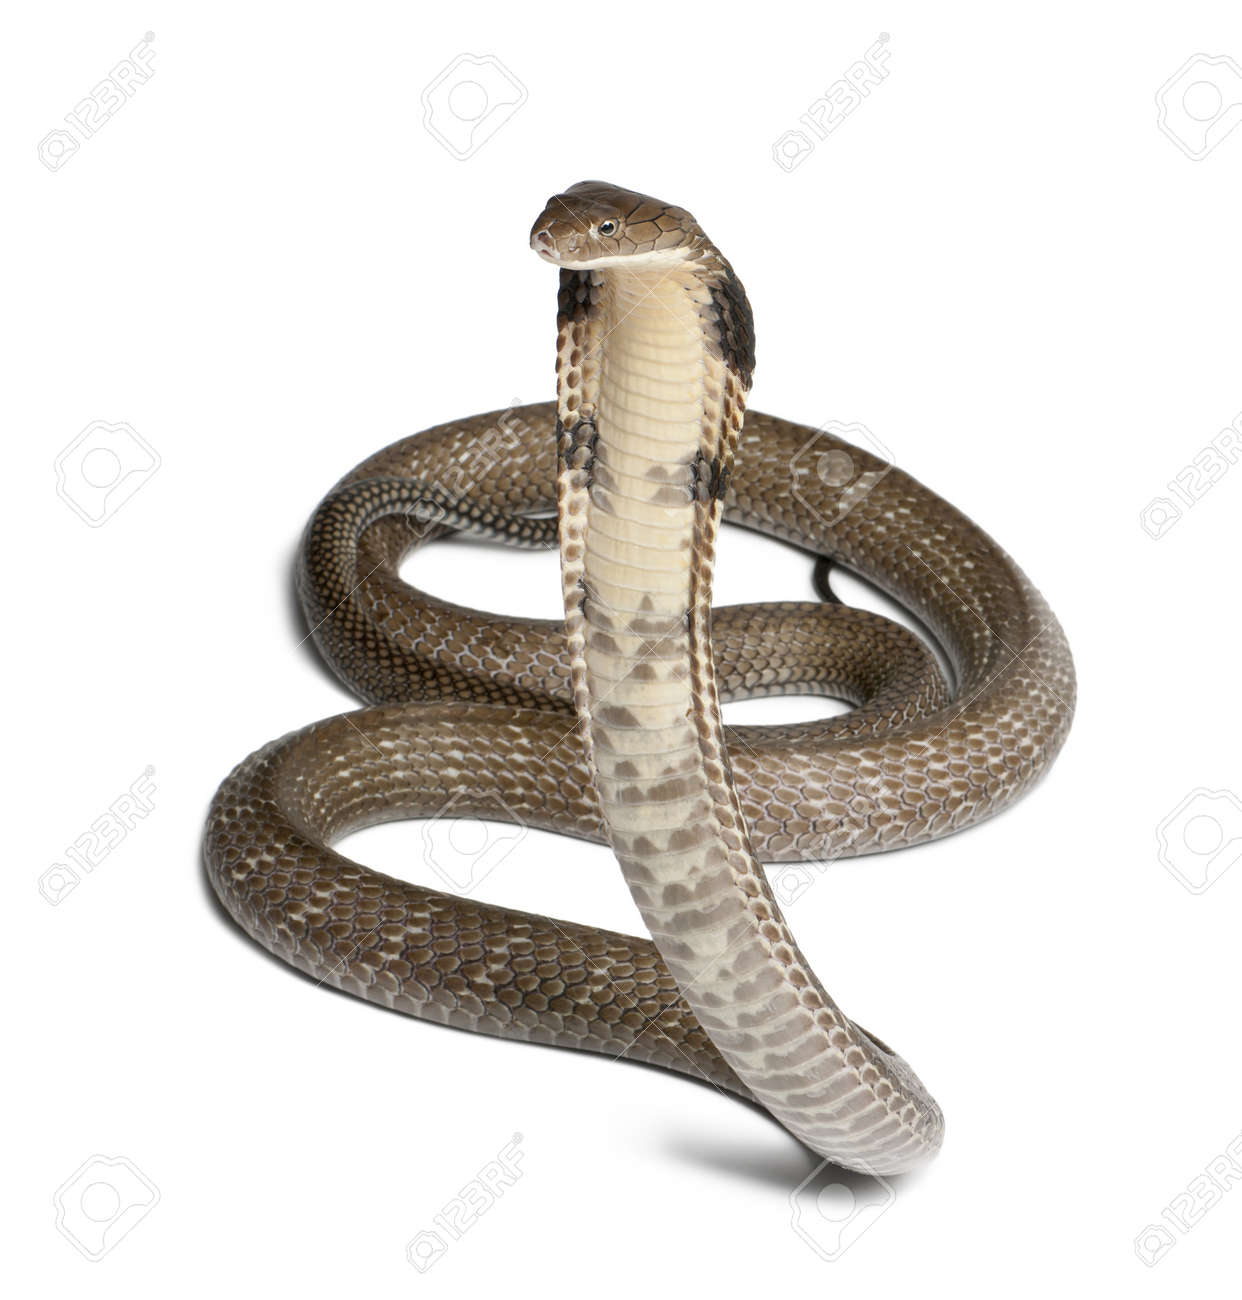 king cobra - Ophiophagus hannah, poisonous, white background - 13582558